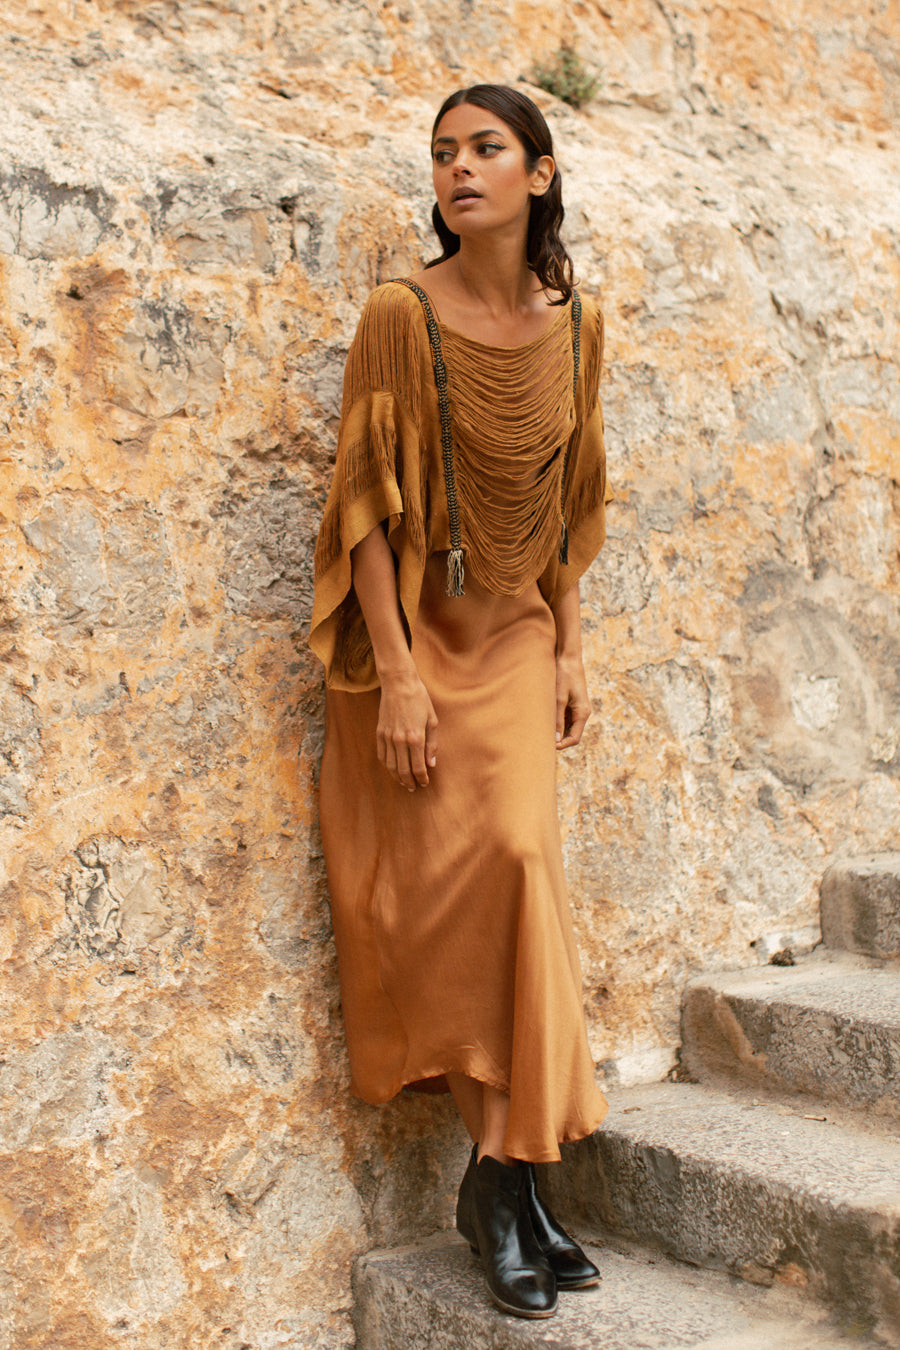 Raw Silk Shredded Top in Saffron Orange Brown Beaded